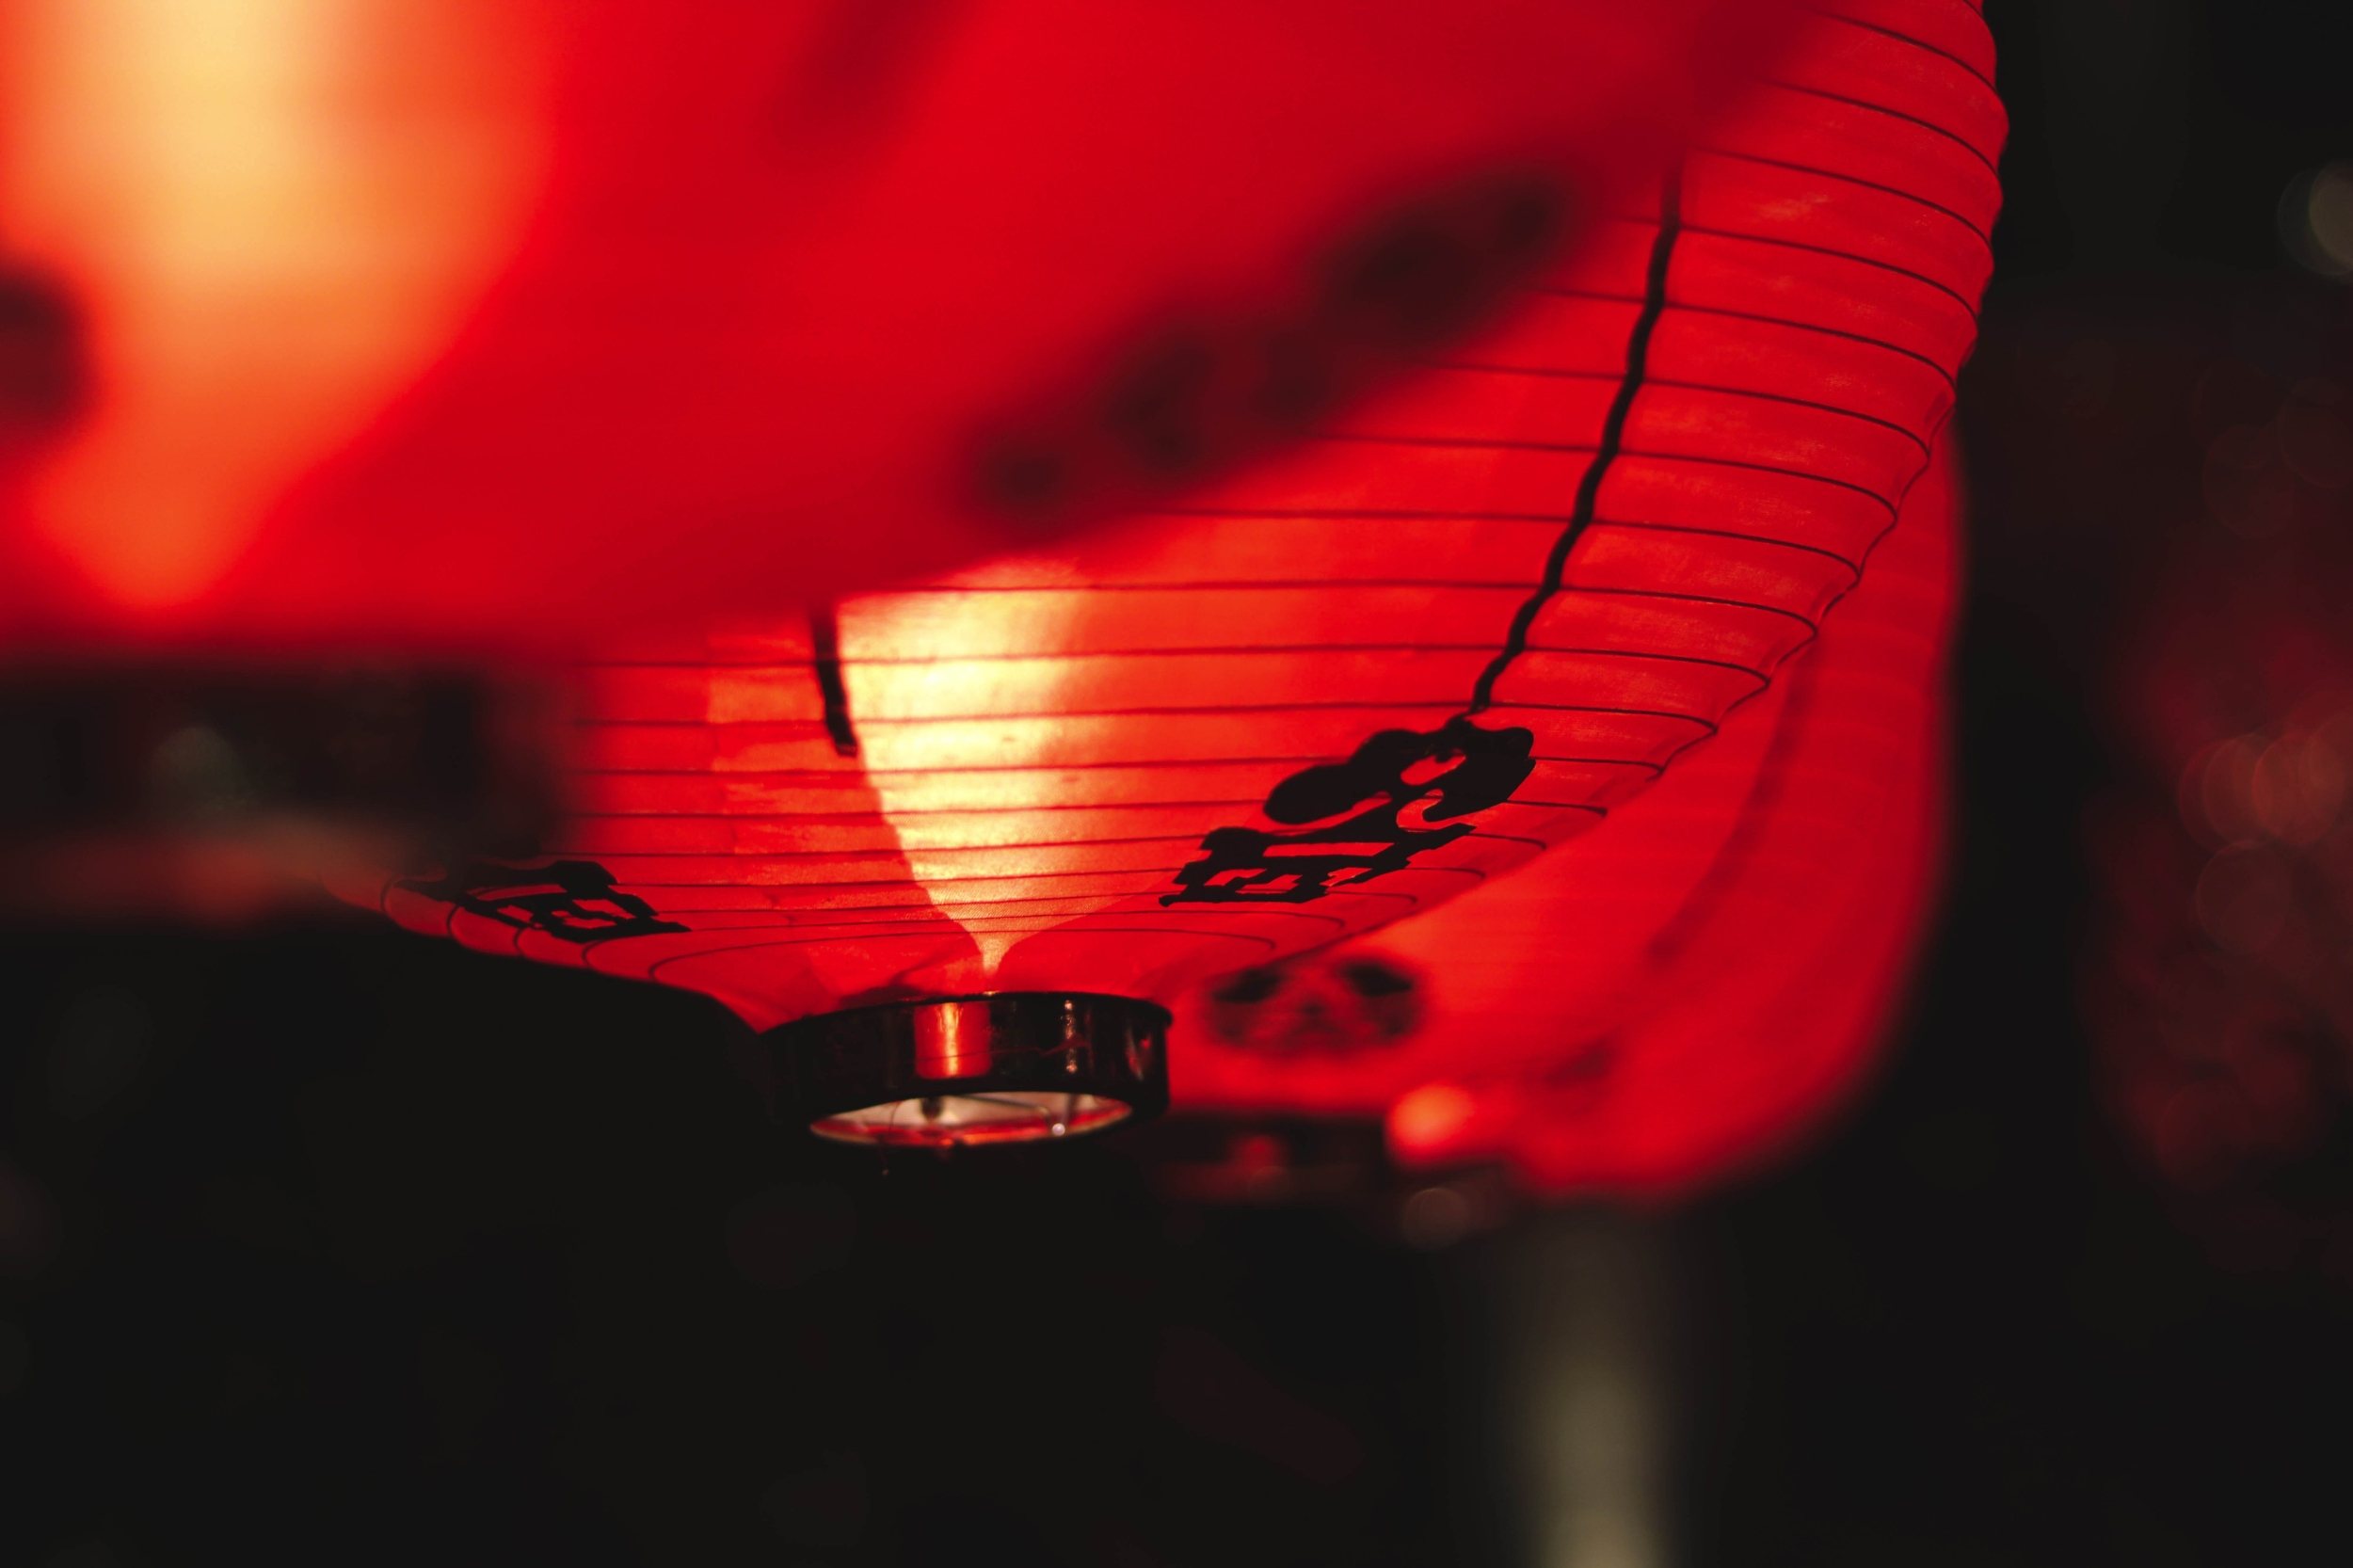 A red, glowing lantern in Thailand.